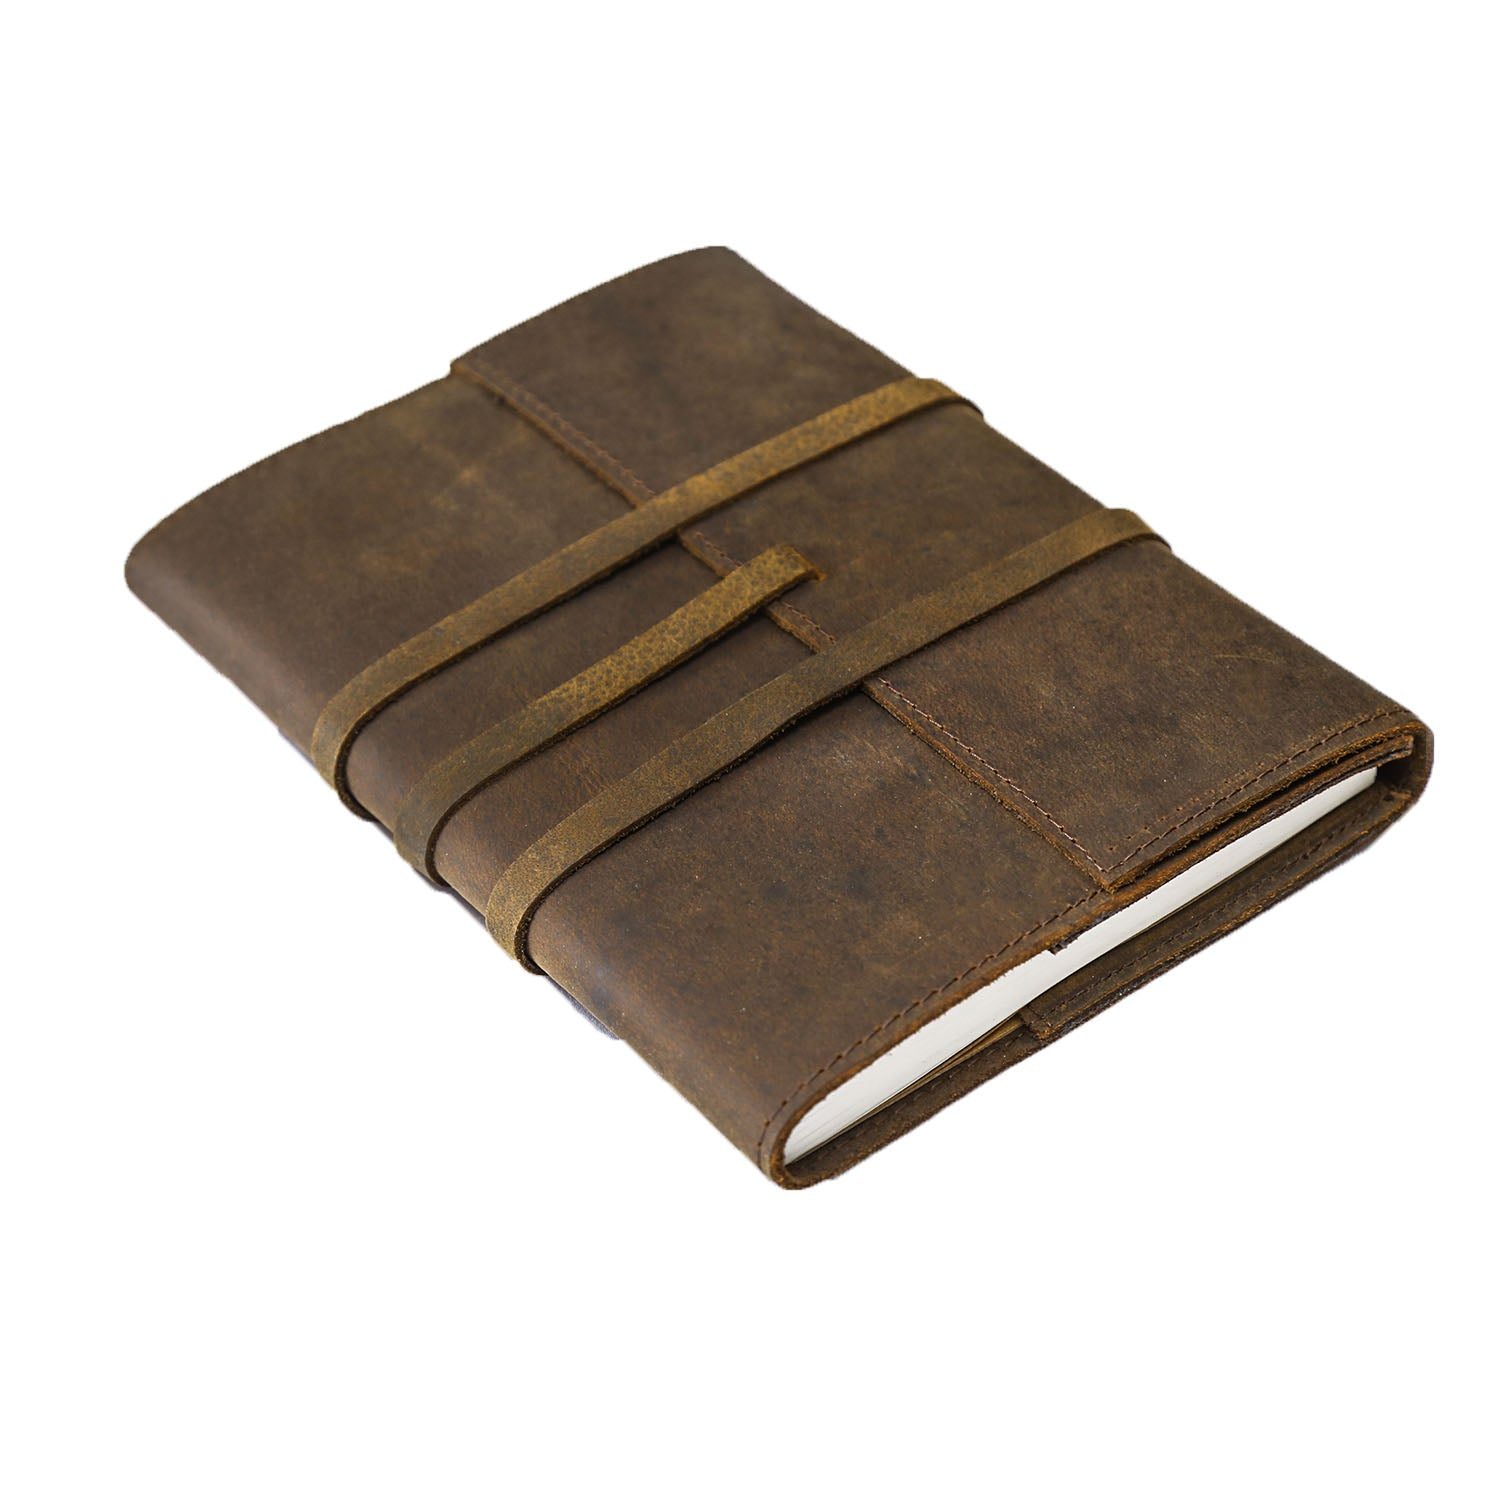 Very REFILLABLE LEATHER JOURNAL| Large 8 by 6 Pen holder and Pouches  TX12